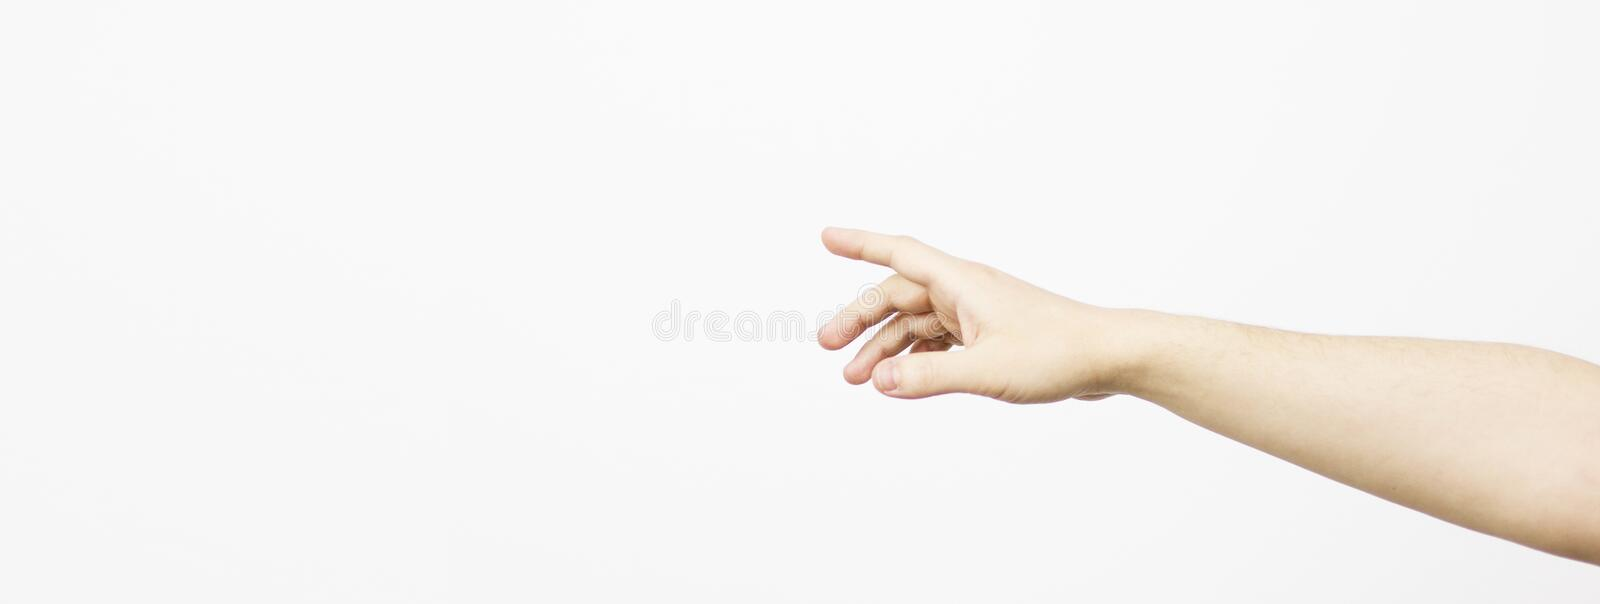 Woman`s hand, white background, natural, young, man arm isolated on white background. hand is Reach out to grab something stock photo